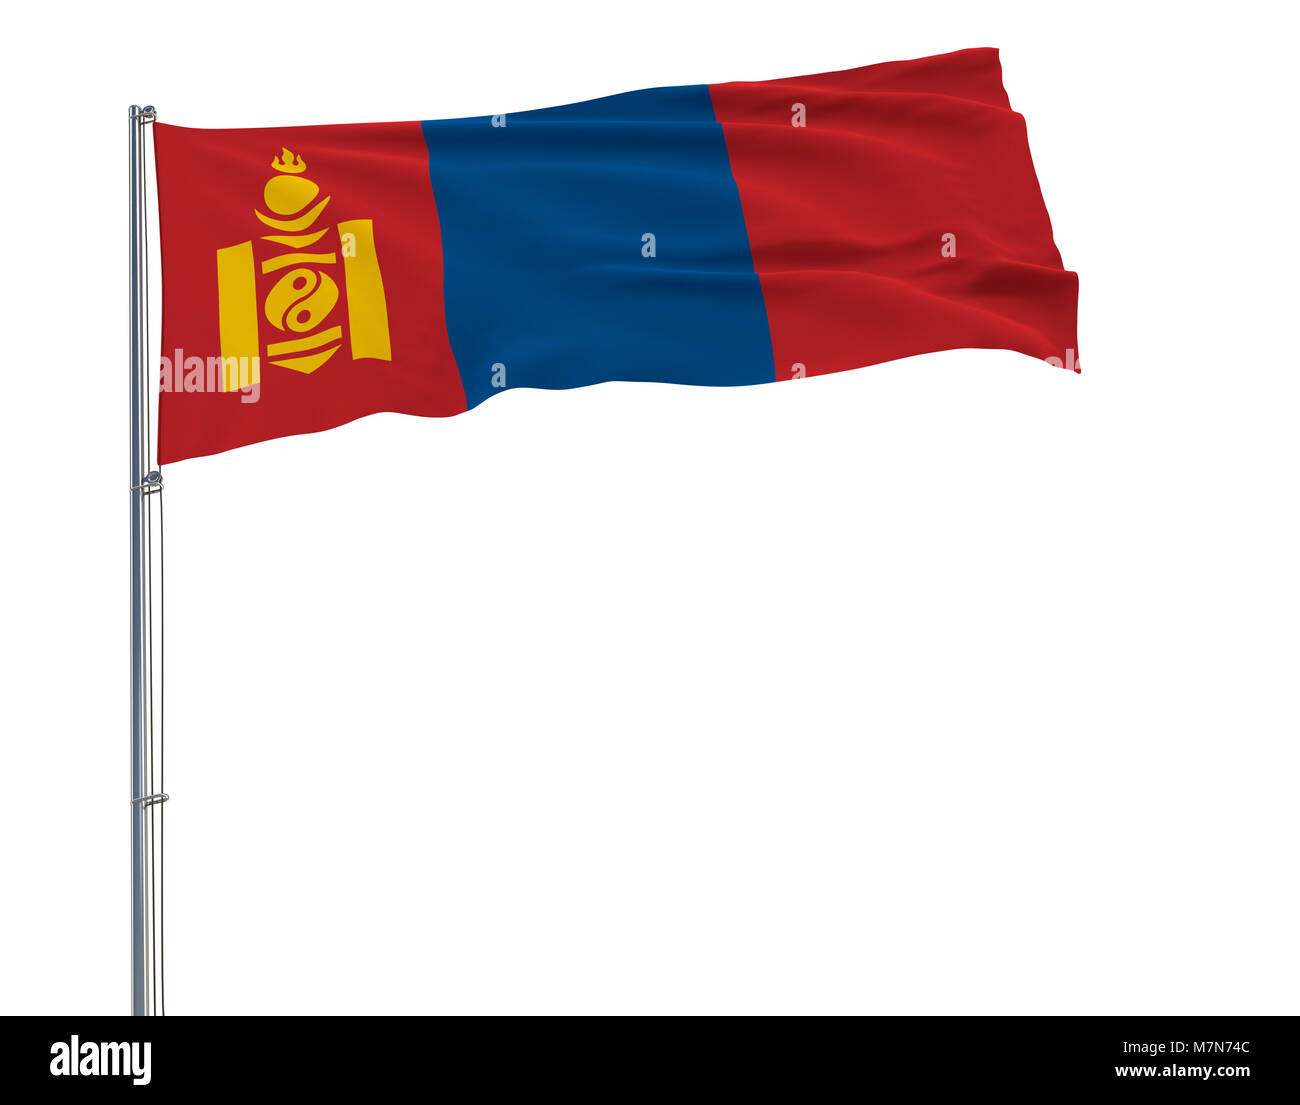 Isolate flag of Mongolia on a flagpole fluttering in the wind on a white background, 3d rendering - Stock Image